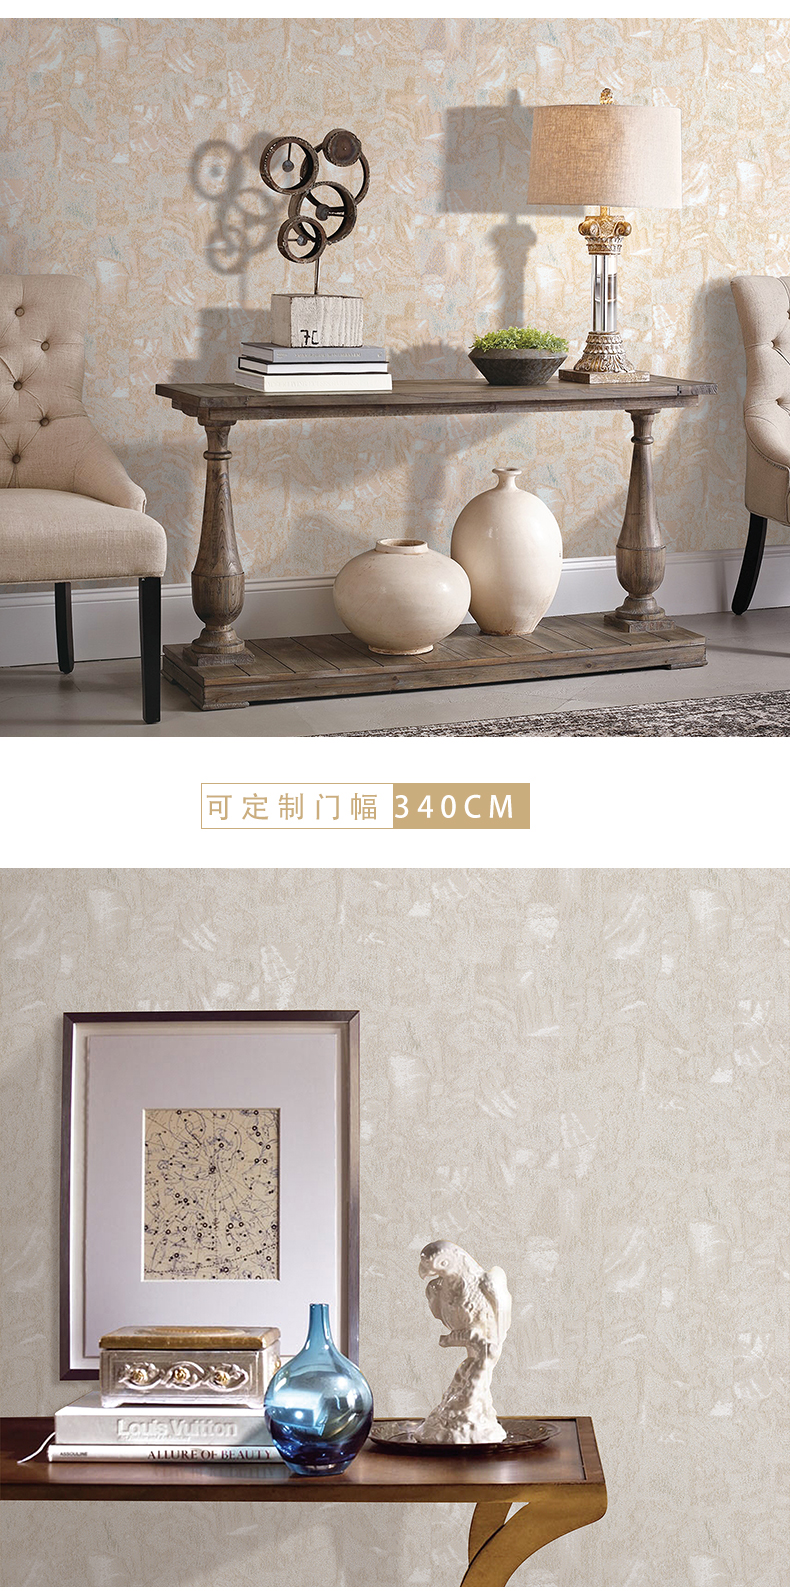 http://www.yuqilinqb.cn/data/images/product/20191105095546_390.jpg